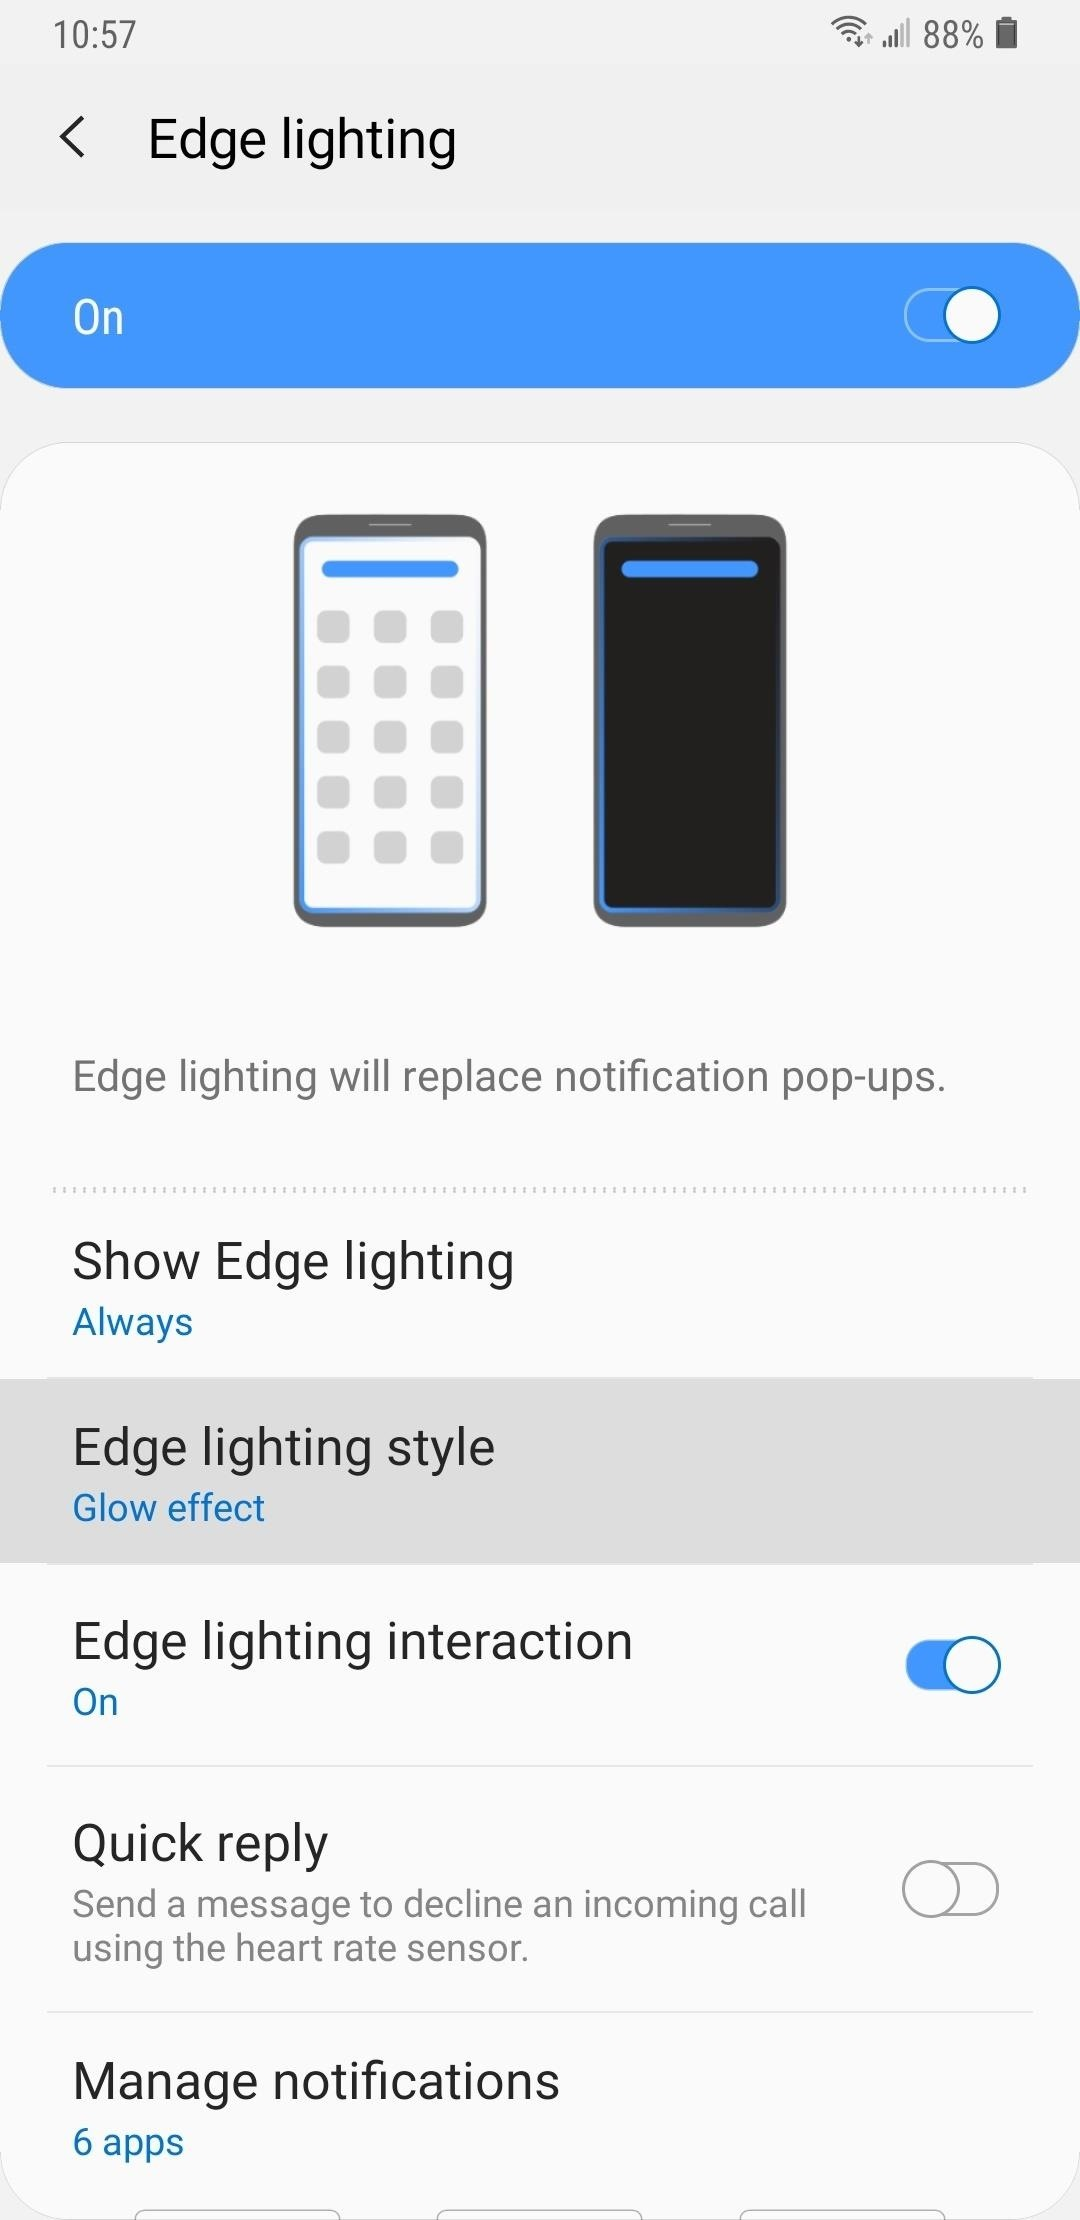 Samsung Android Pie Update: Galaxy Devices Are Getting Better Edge Lighting